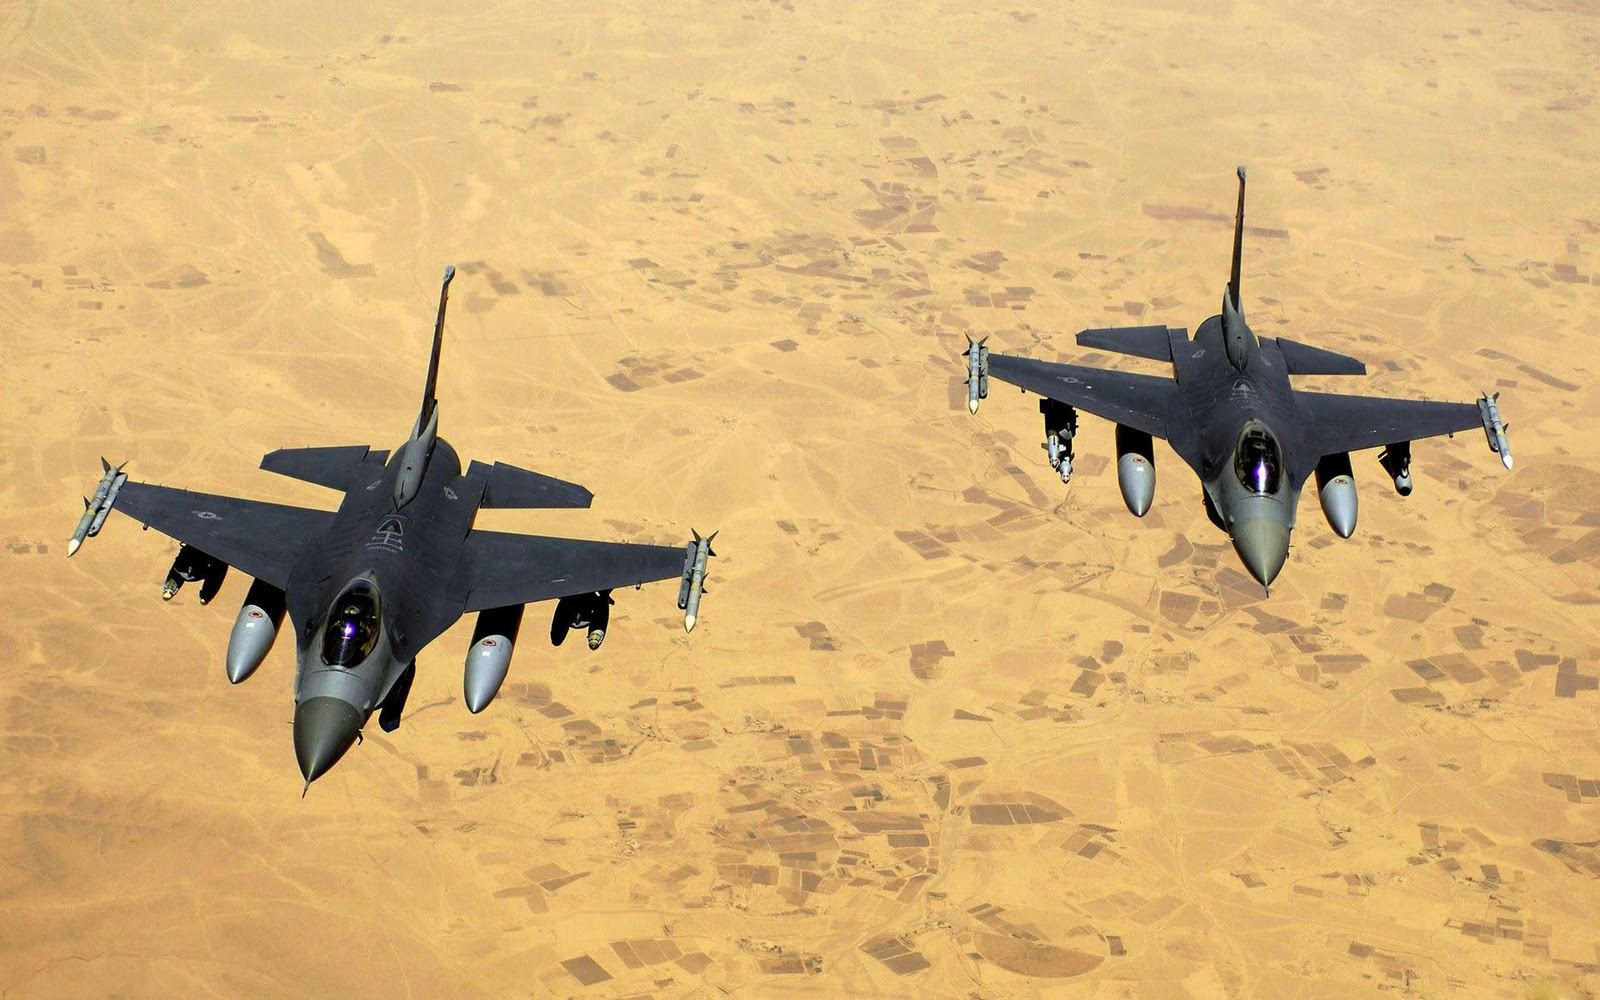 http://2.bp.blogspot.com/-uCnTuo-Bb5k/TsPme4h3_LI/AAAAAAAABAE/UIvg8uHutPk/s1600/HD-Military-Airplanes-photo-desktop-Wallpapers-6.jpg